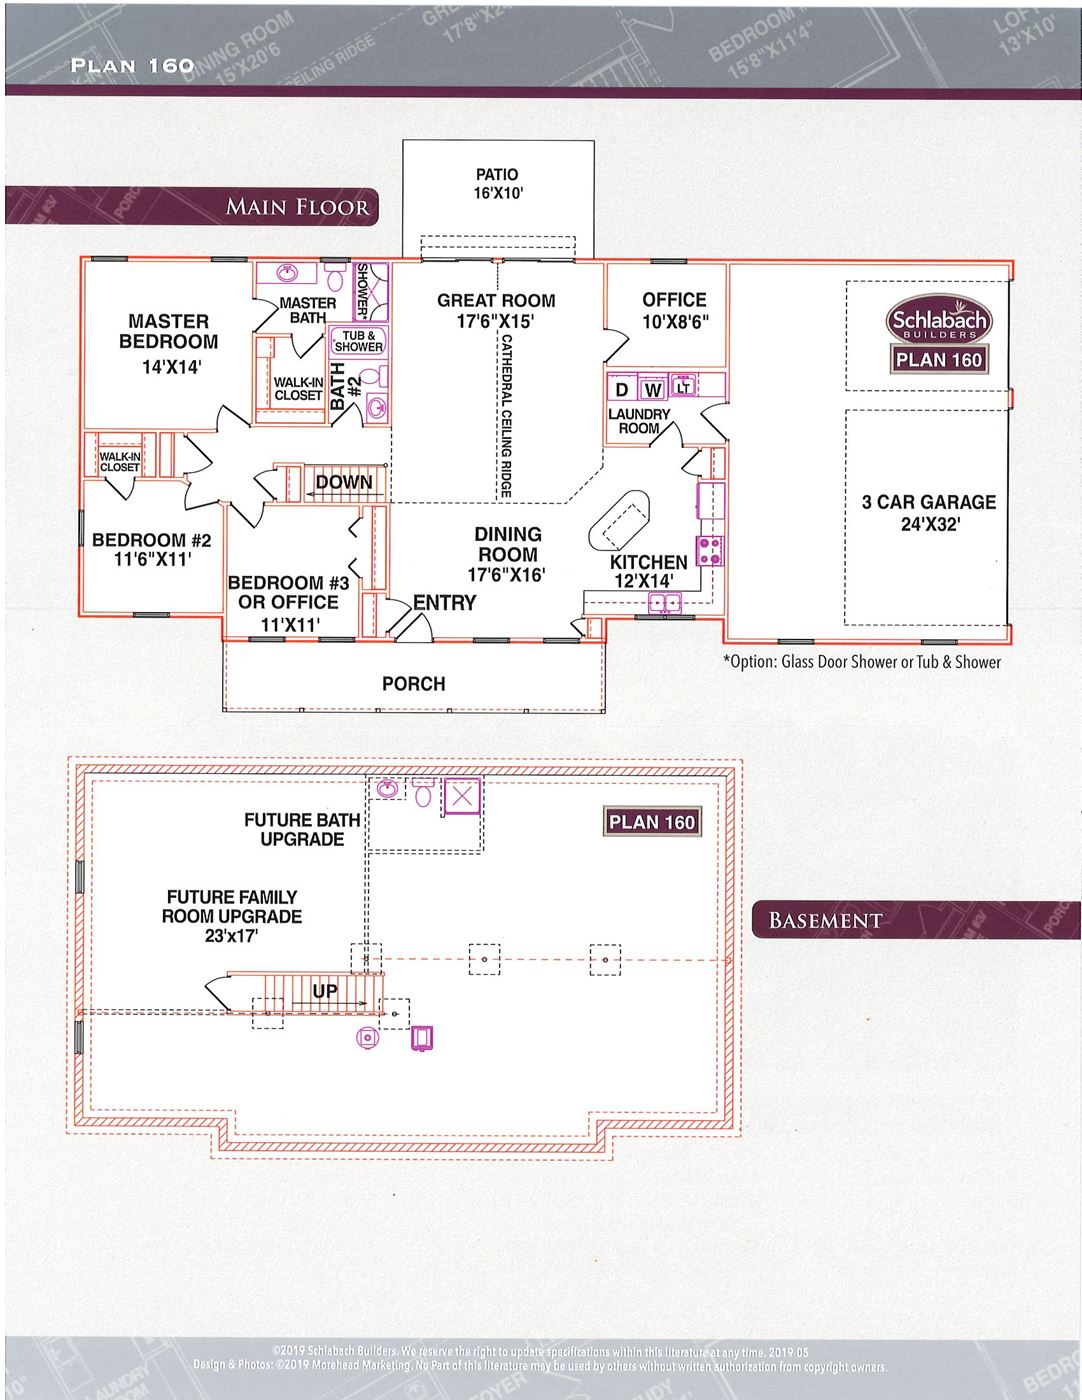 Schlabach Builders Lepi And Associates Available Land Lots For Construction